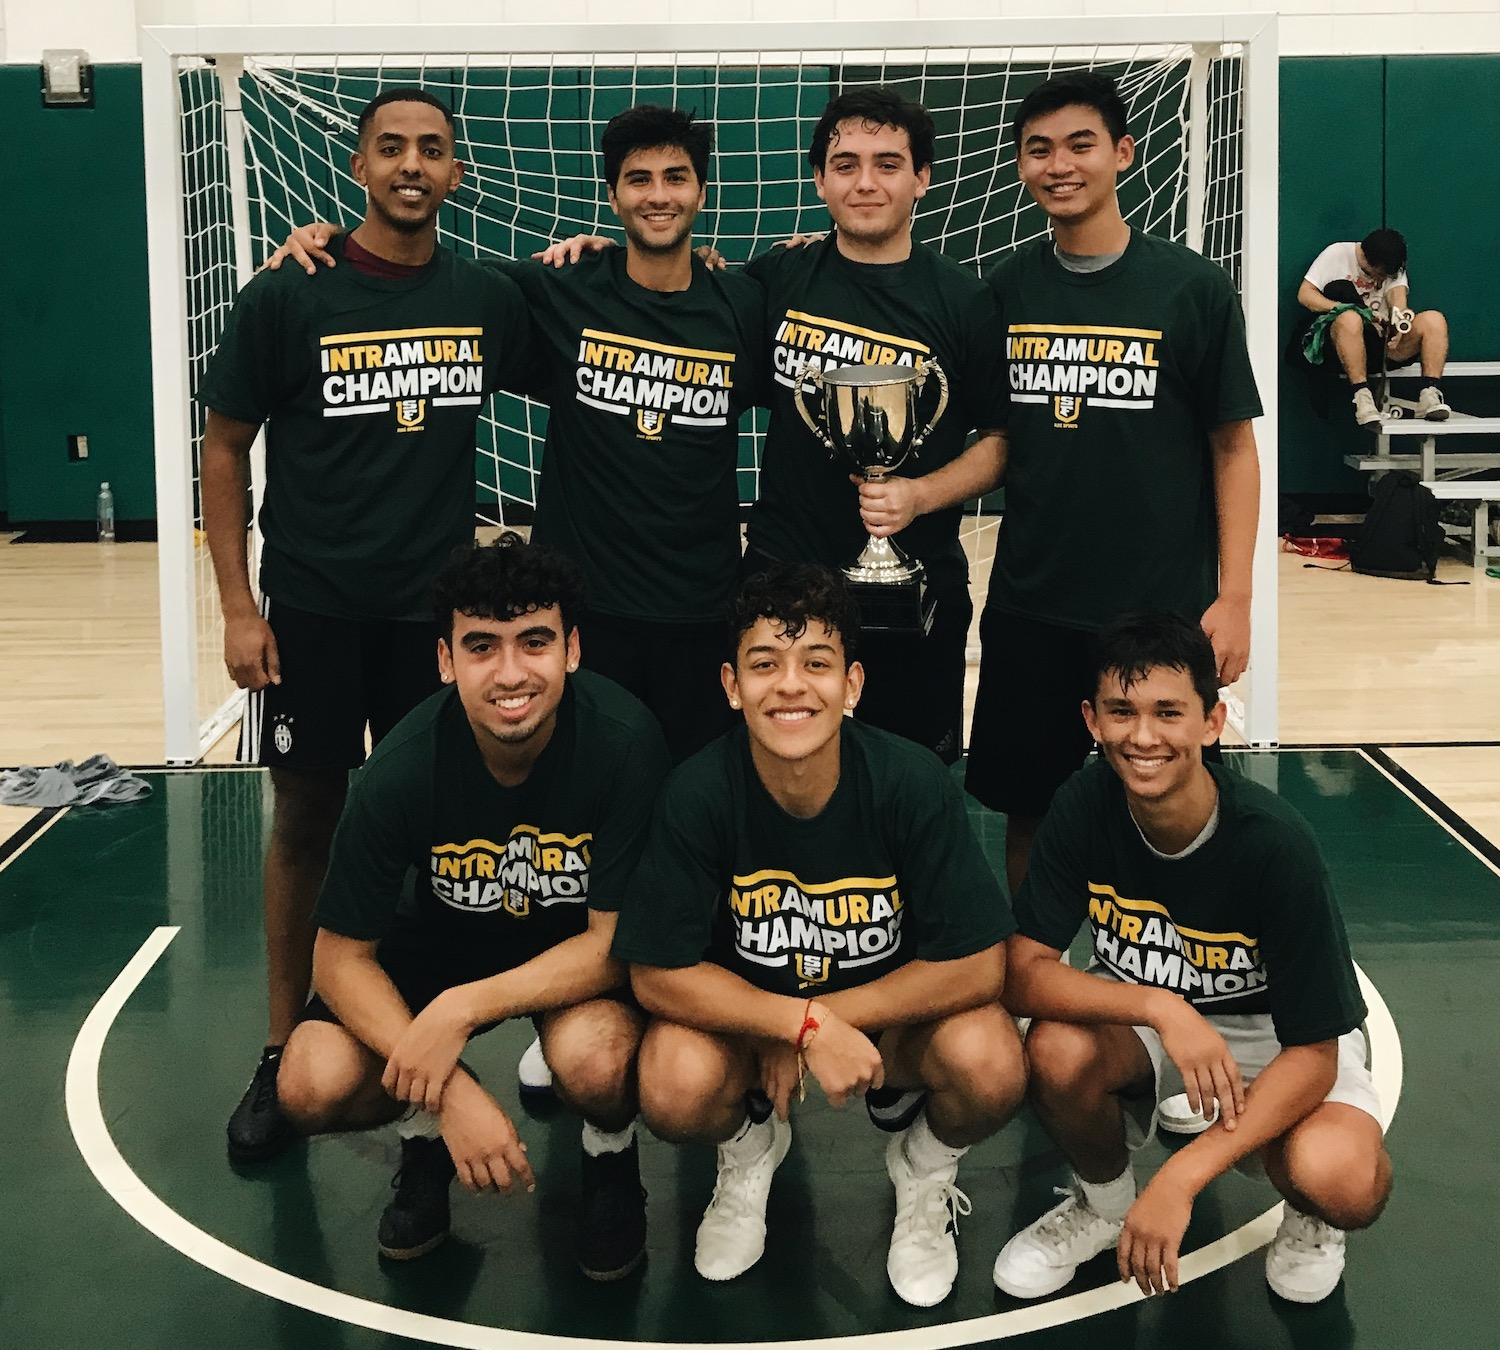 Fall 2019 Indoor Soccer Champion Hoofhearted Standing Together with Trophy